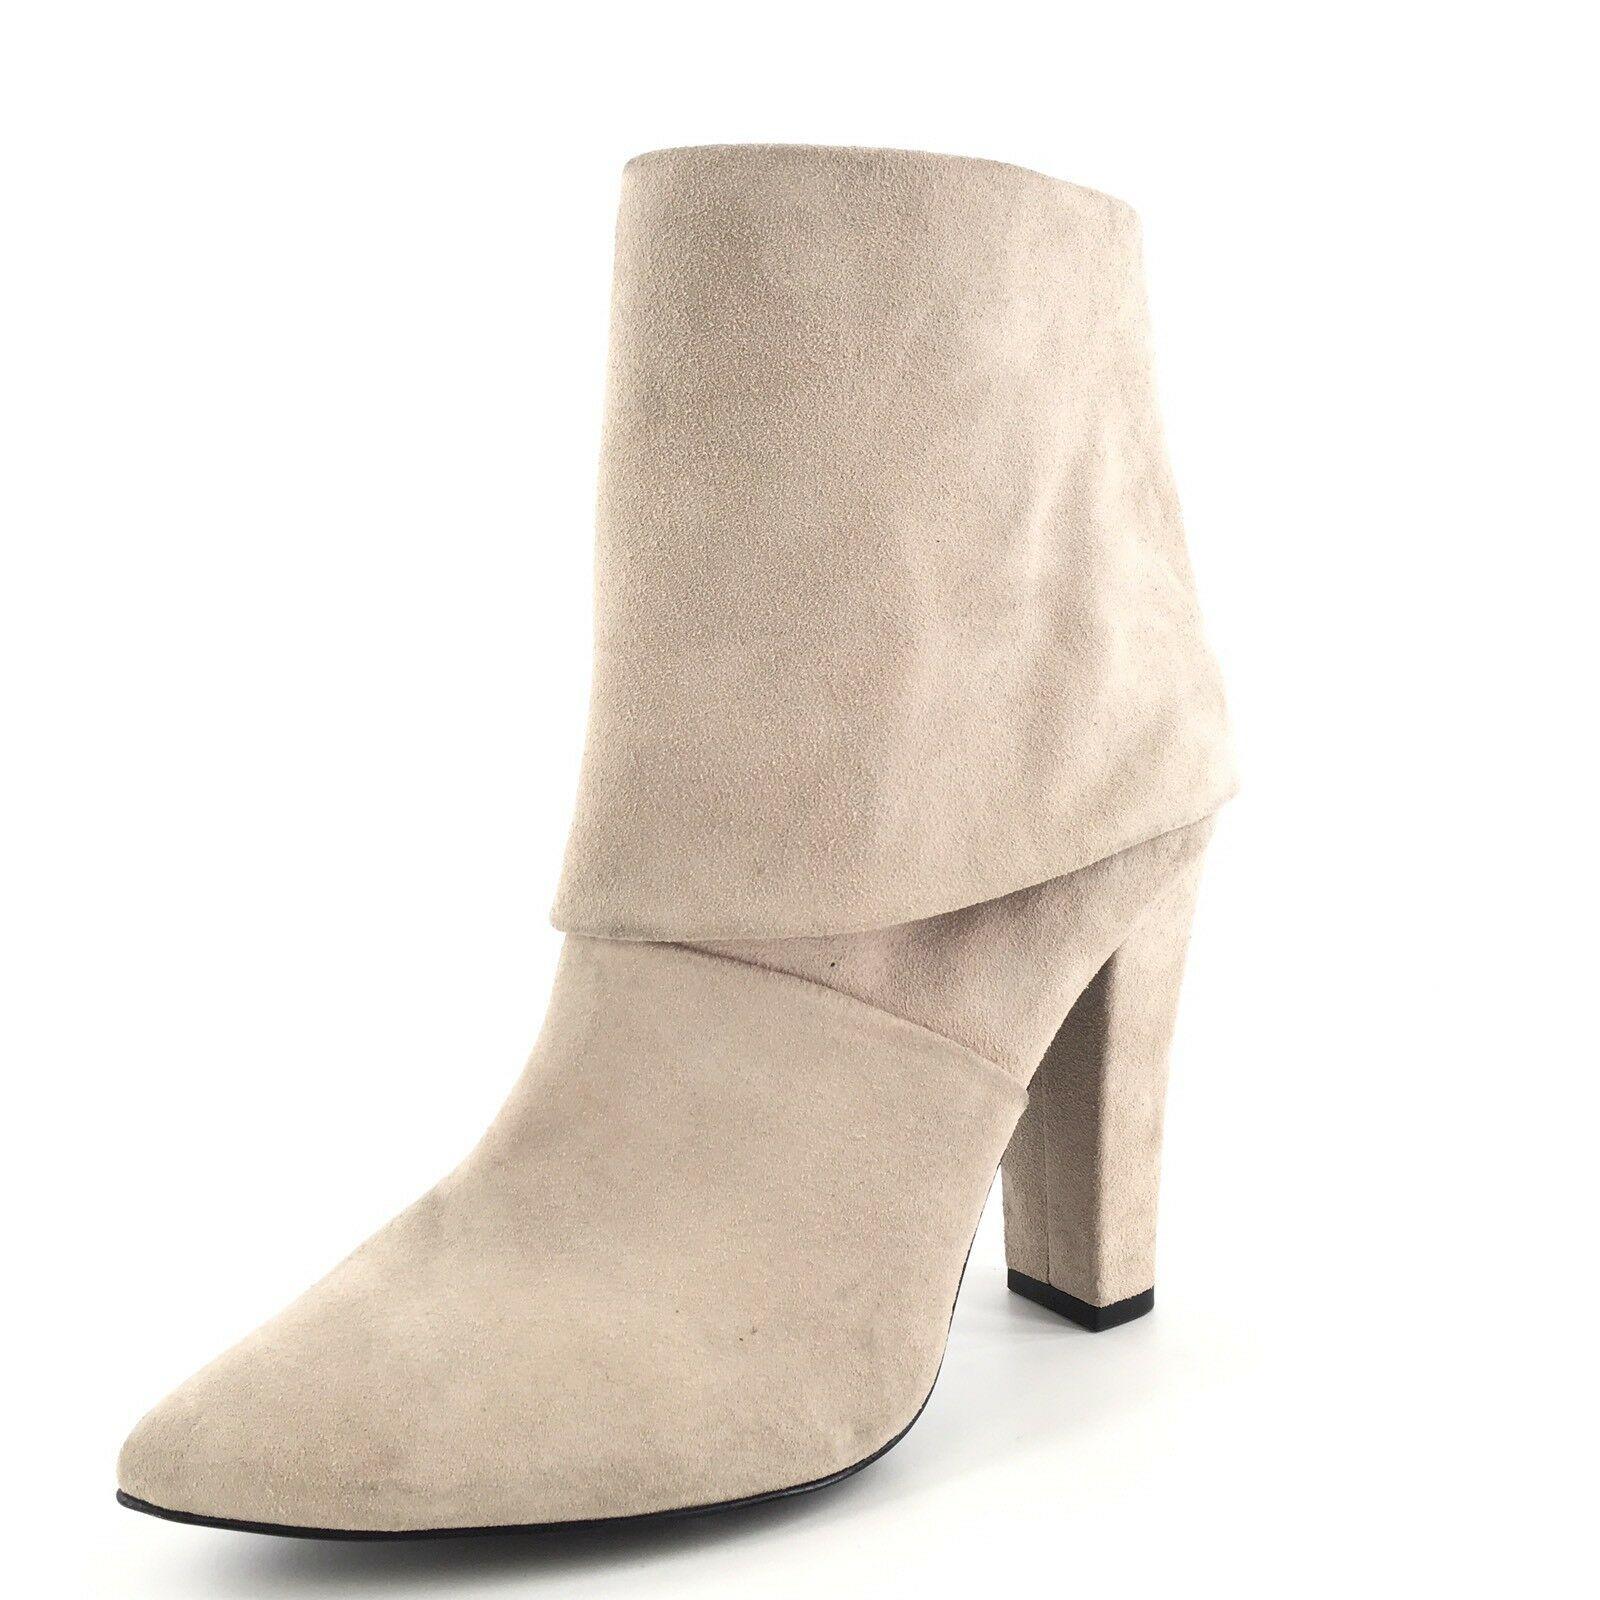 Vince Camuto Amya Classic Taupe Suede Ankle Boots Women's Size 11 M